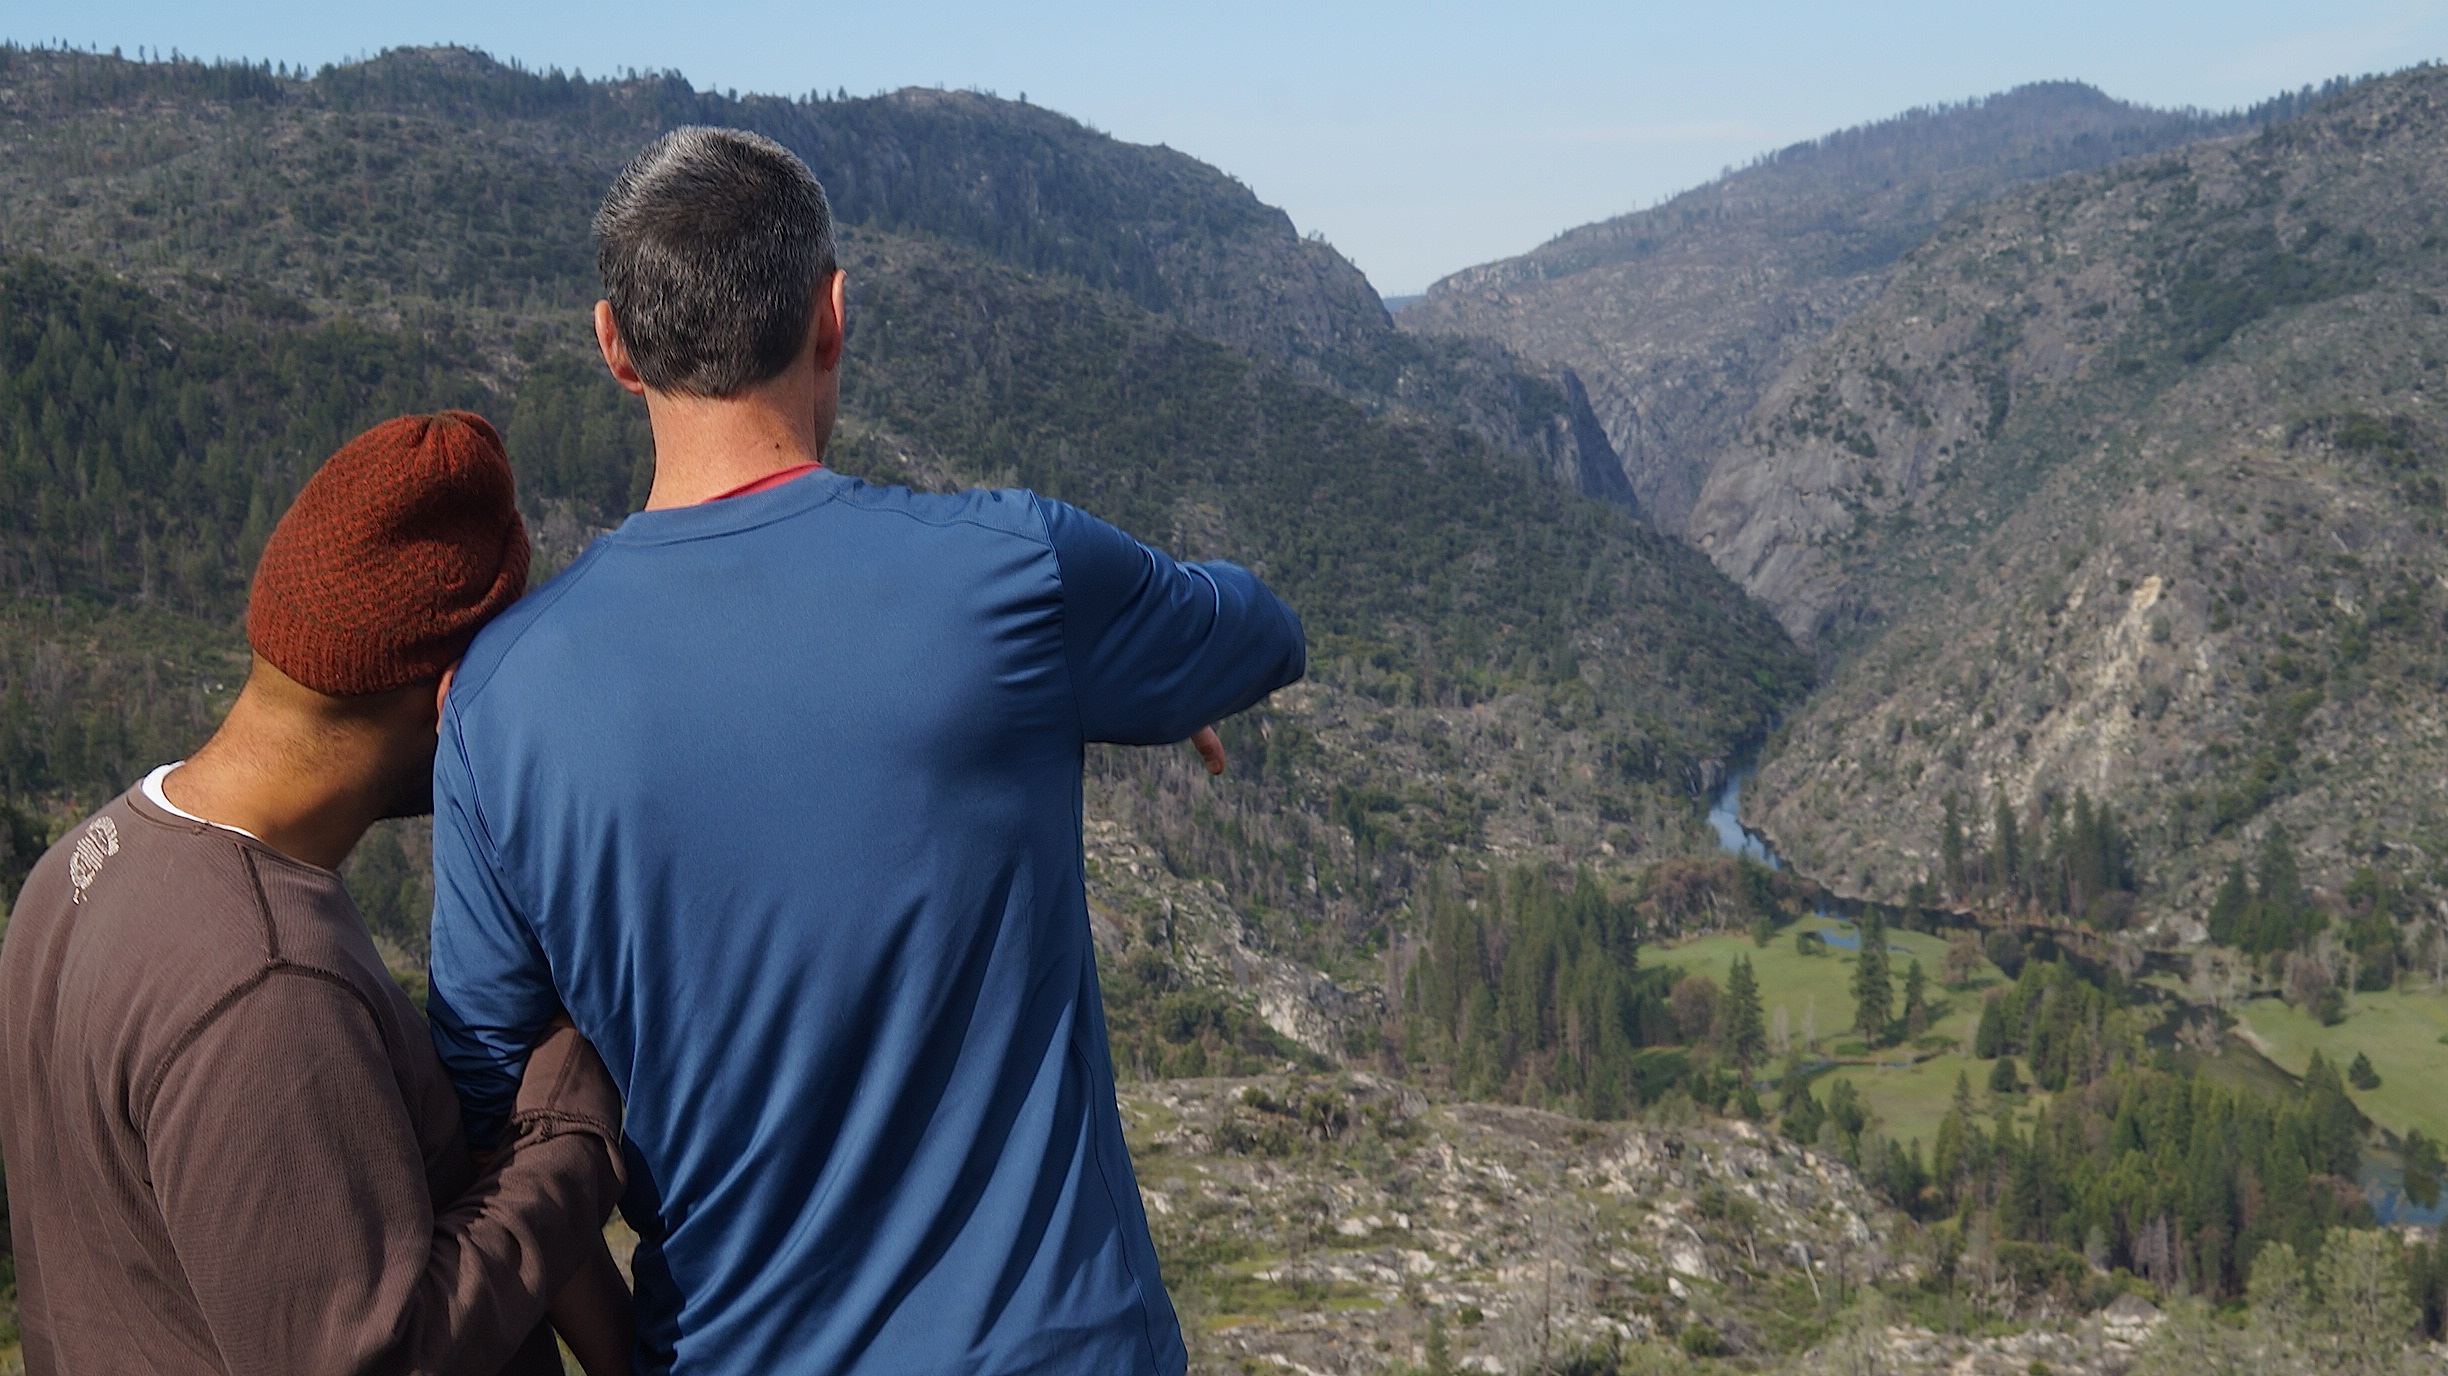 Overlooking Poopenaut Valley, above the Tuolumne River below Hetch Hetchy